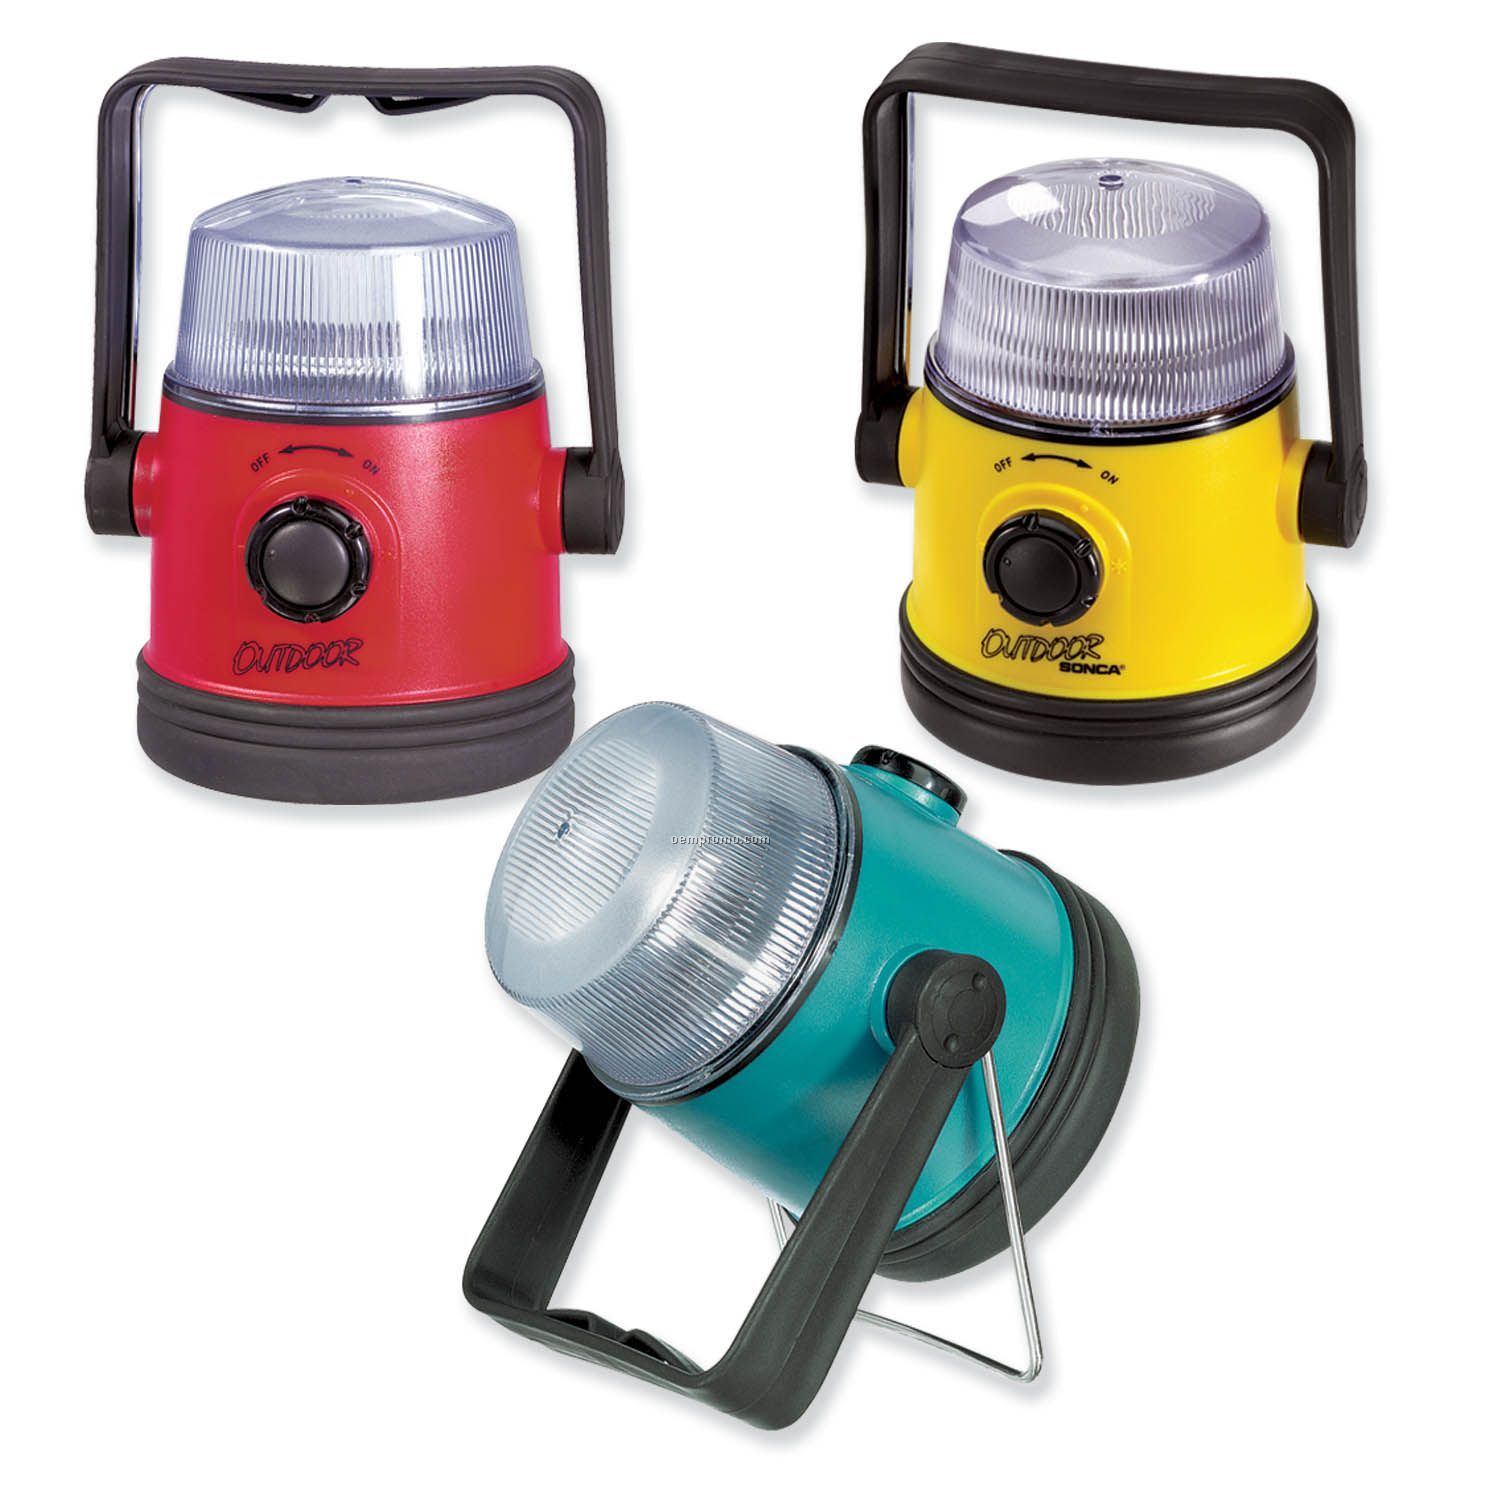 Camping Lantern (Without Batteries)